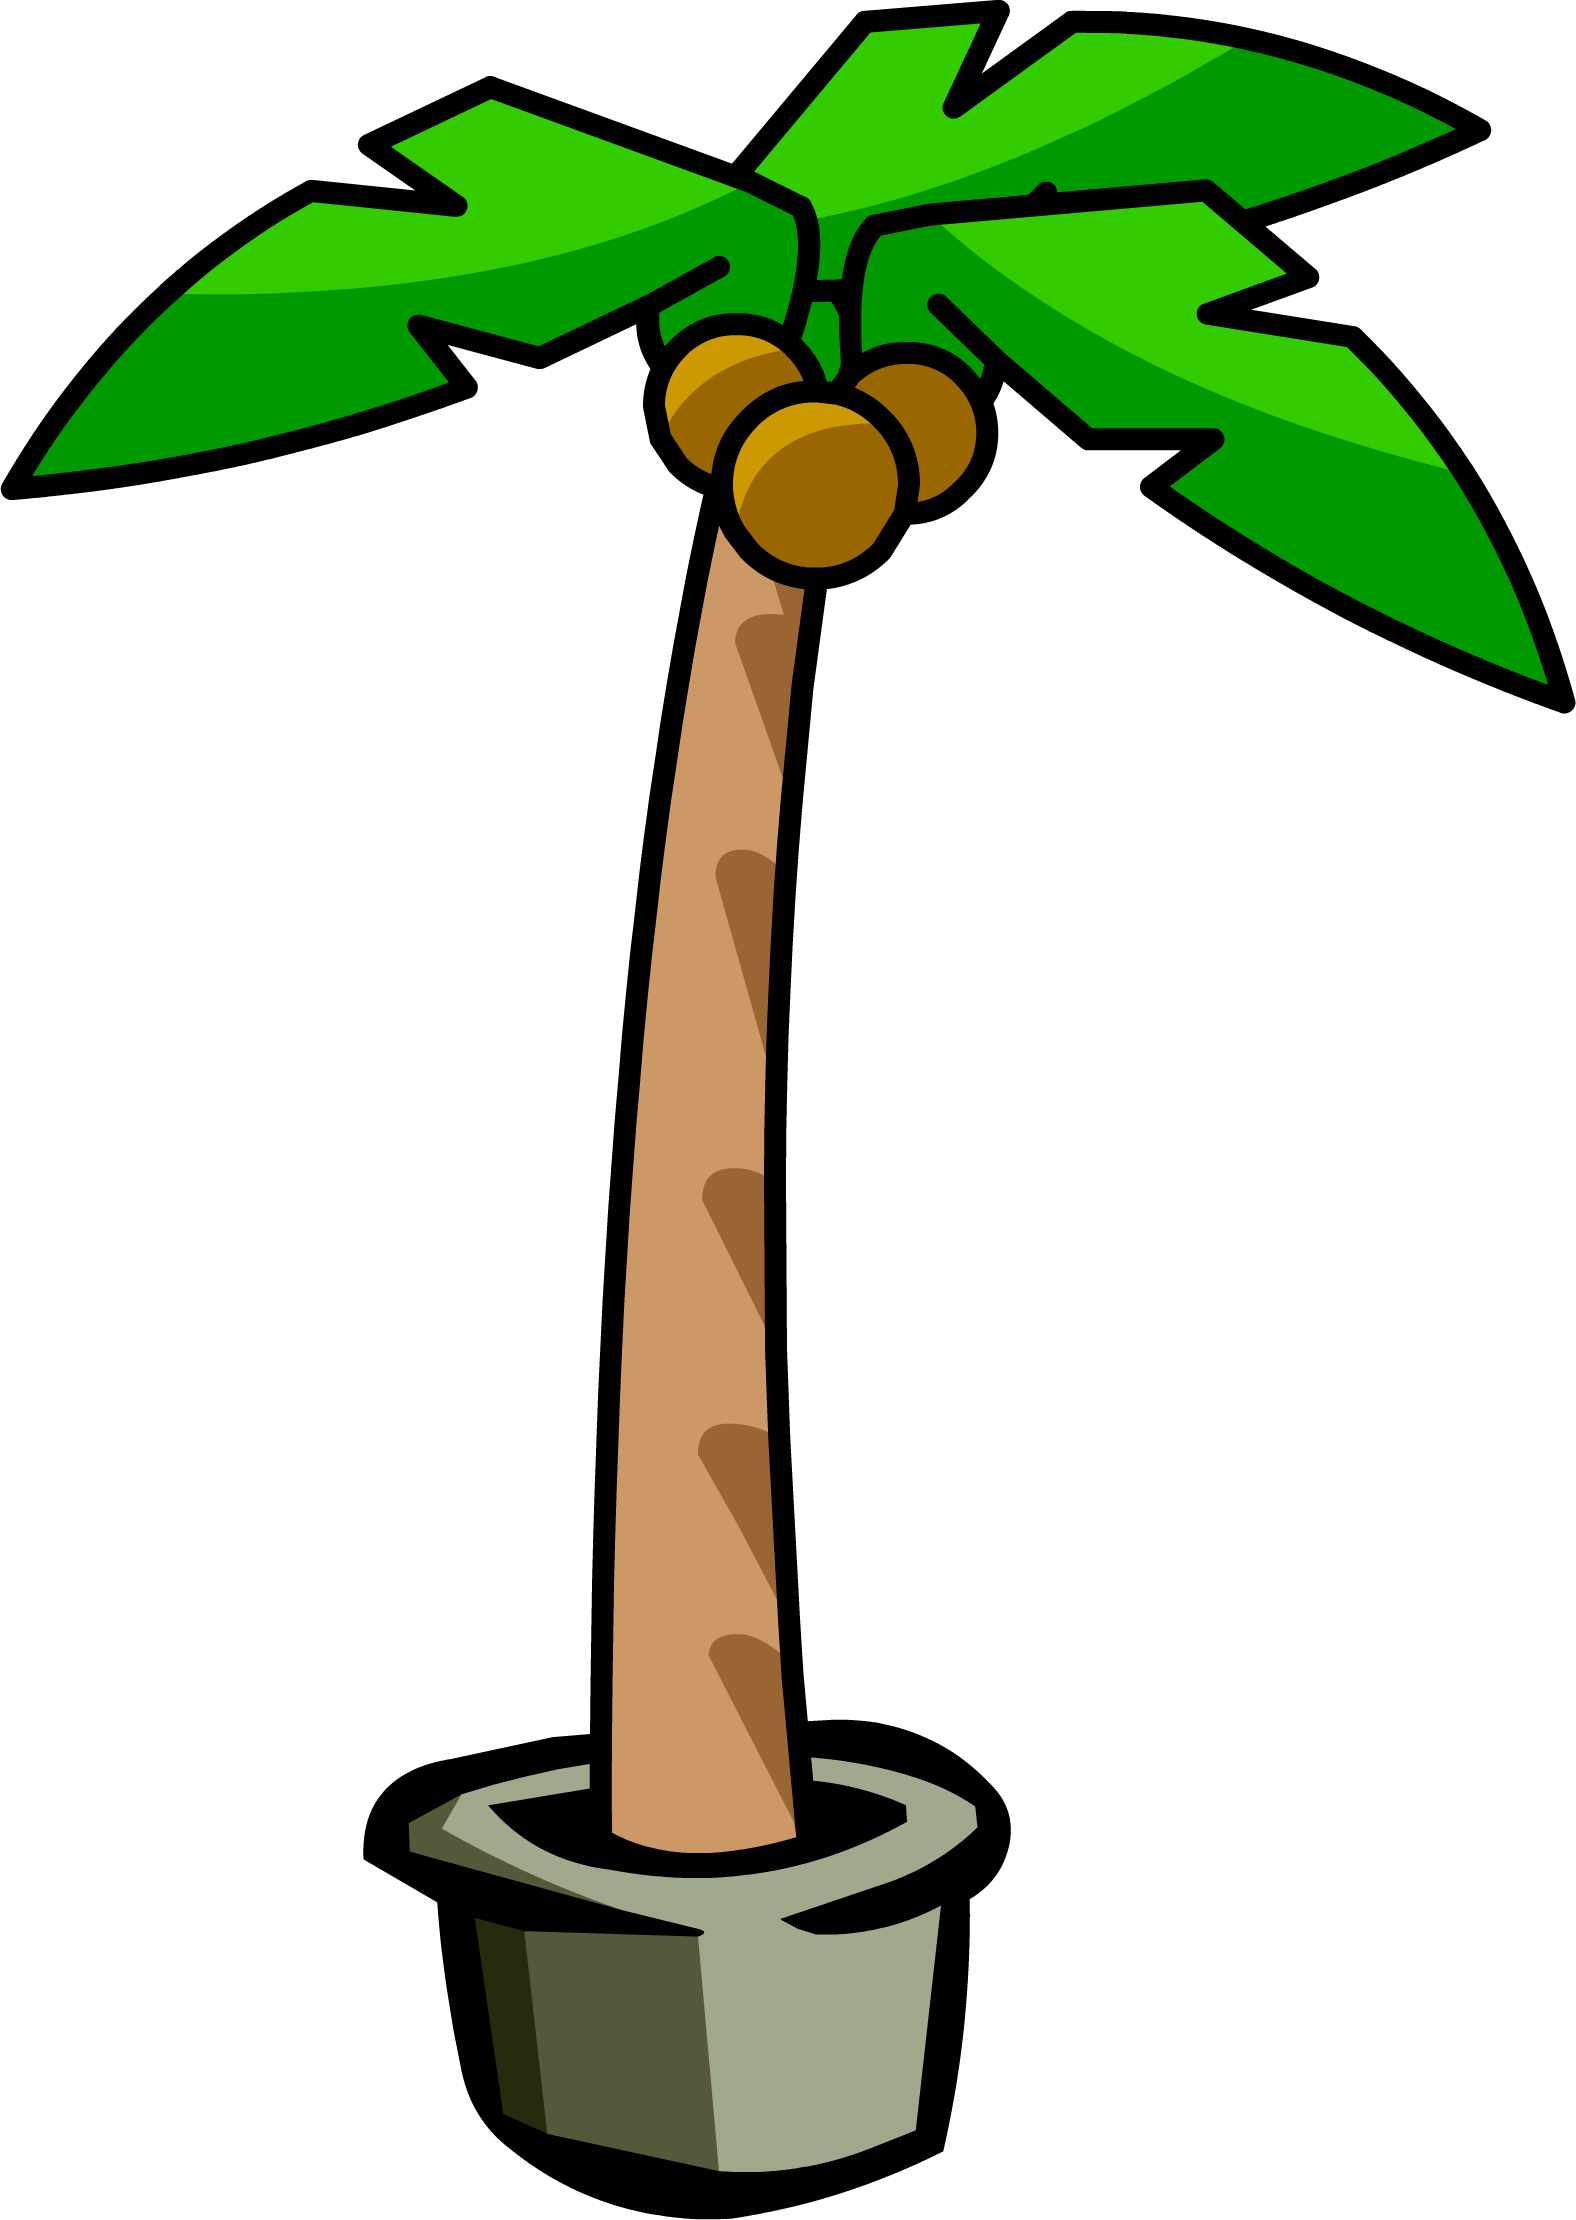 Palm clipart comic. Image tree png club